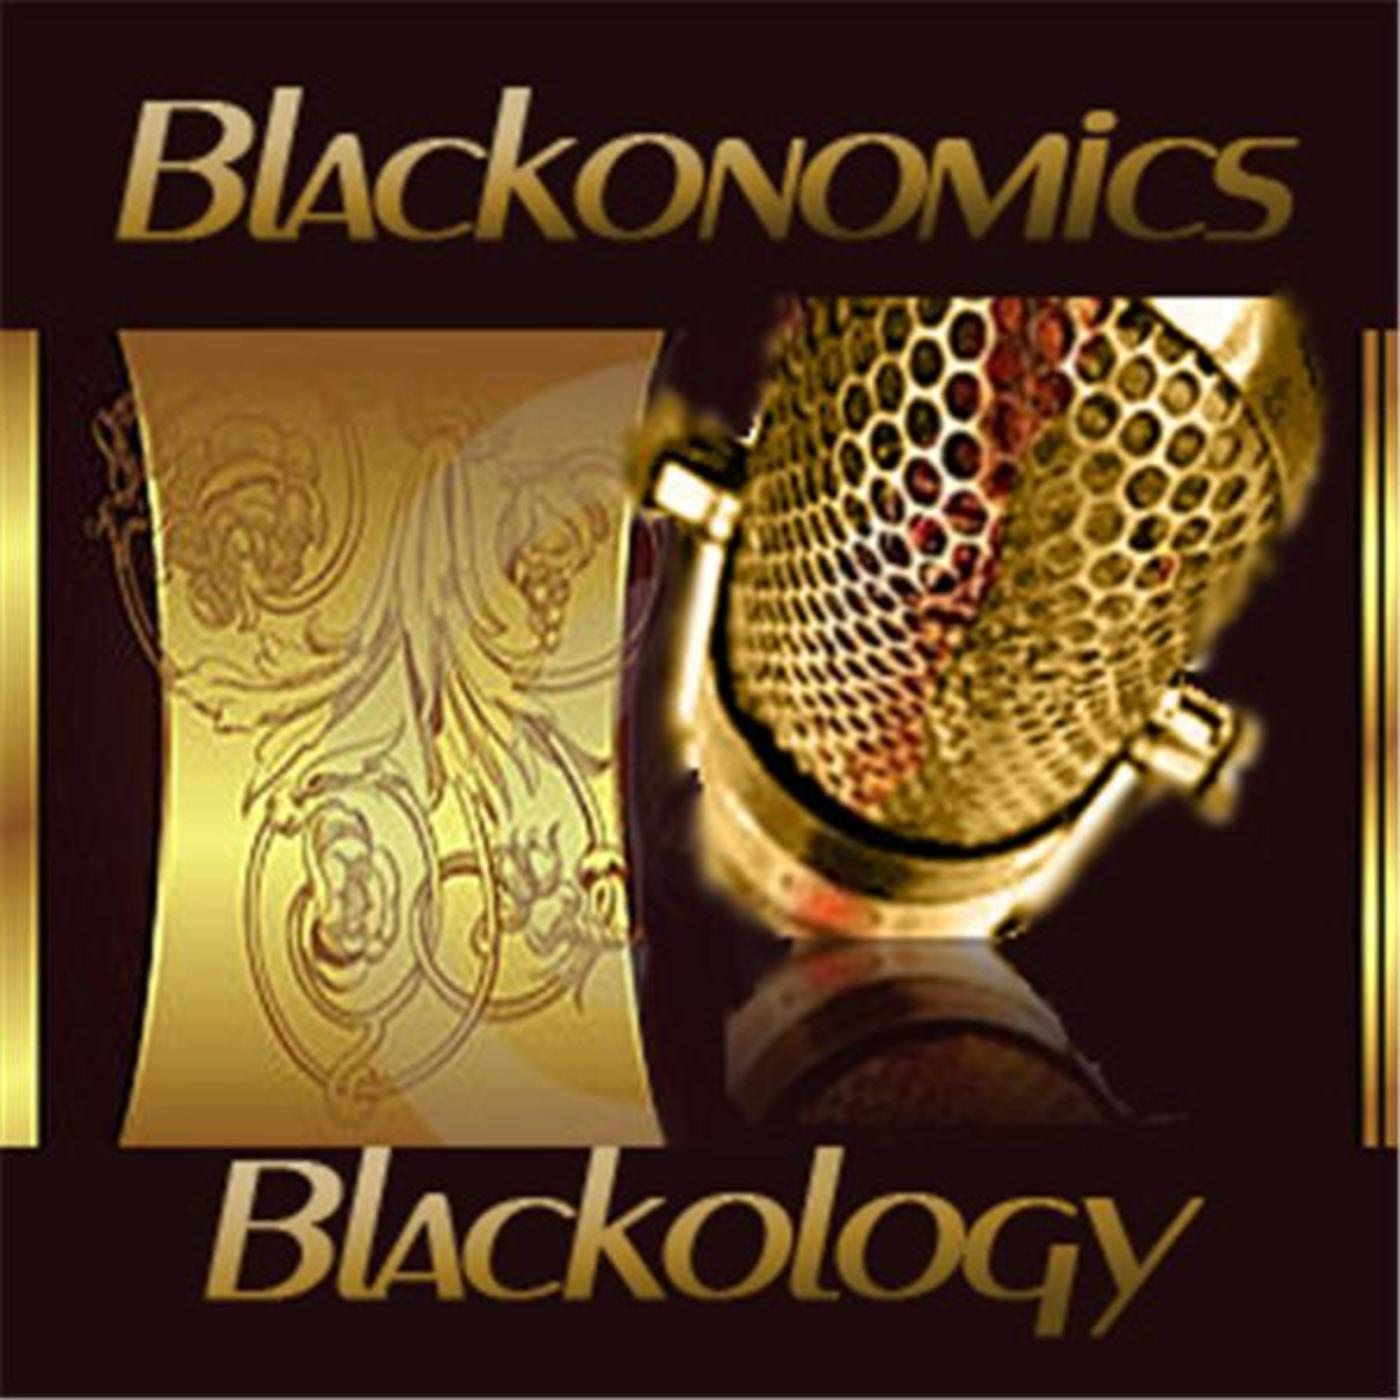 Blackonomics / Blackology